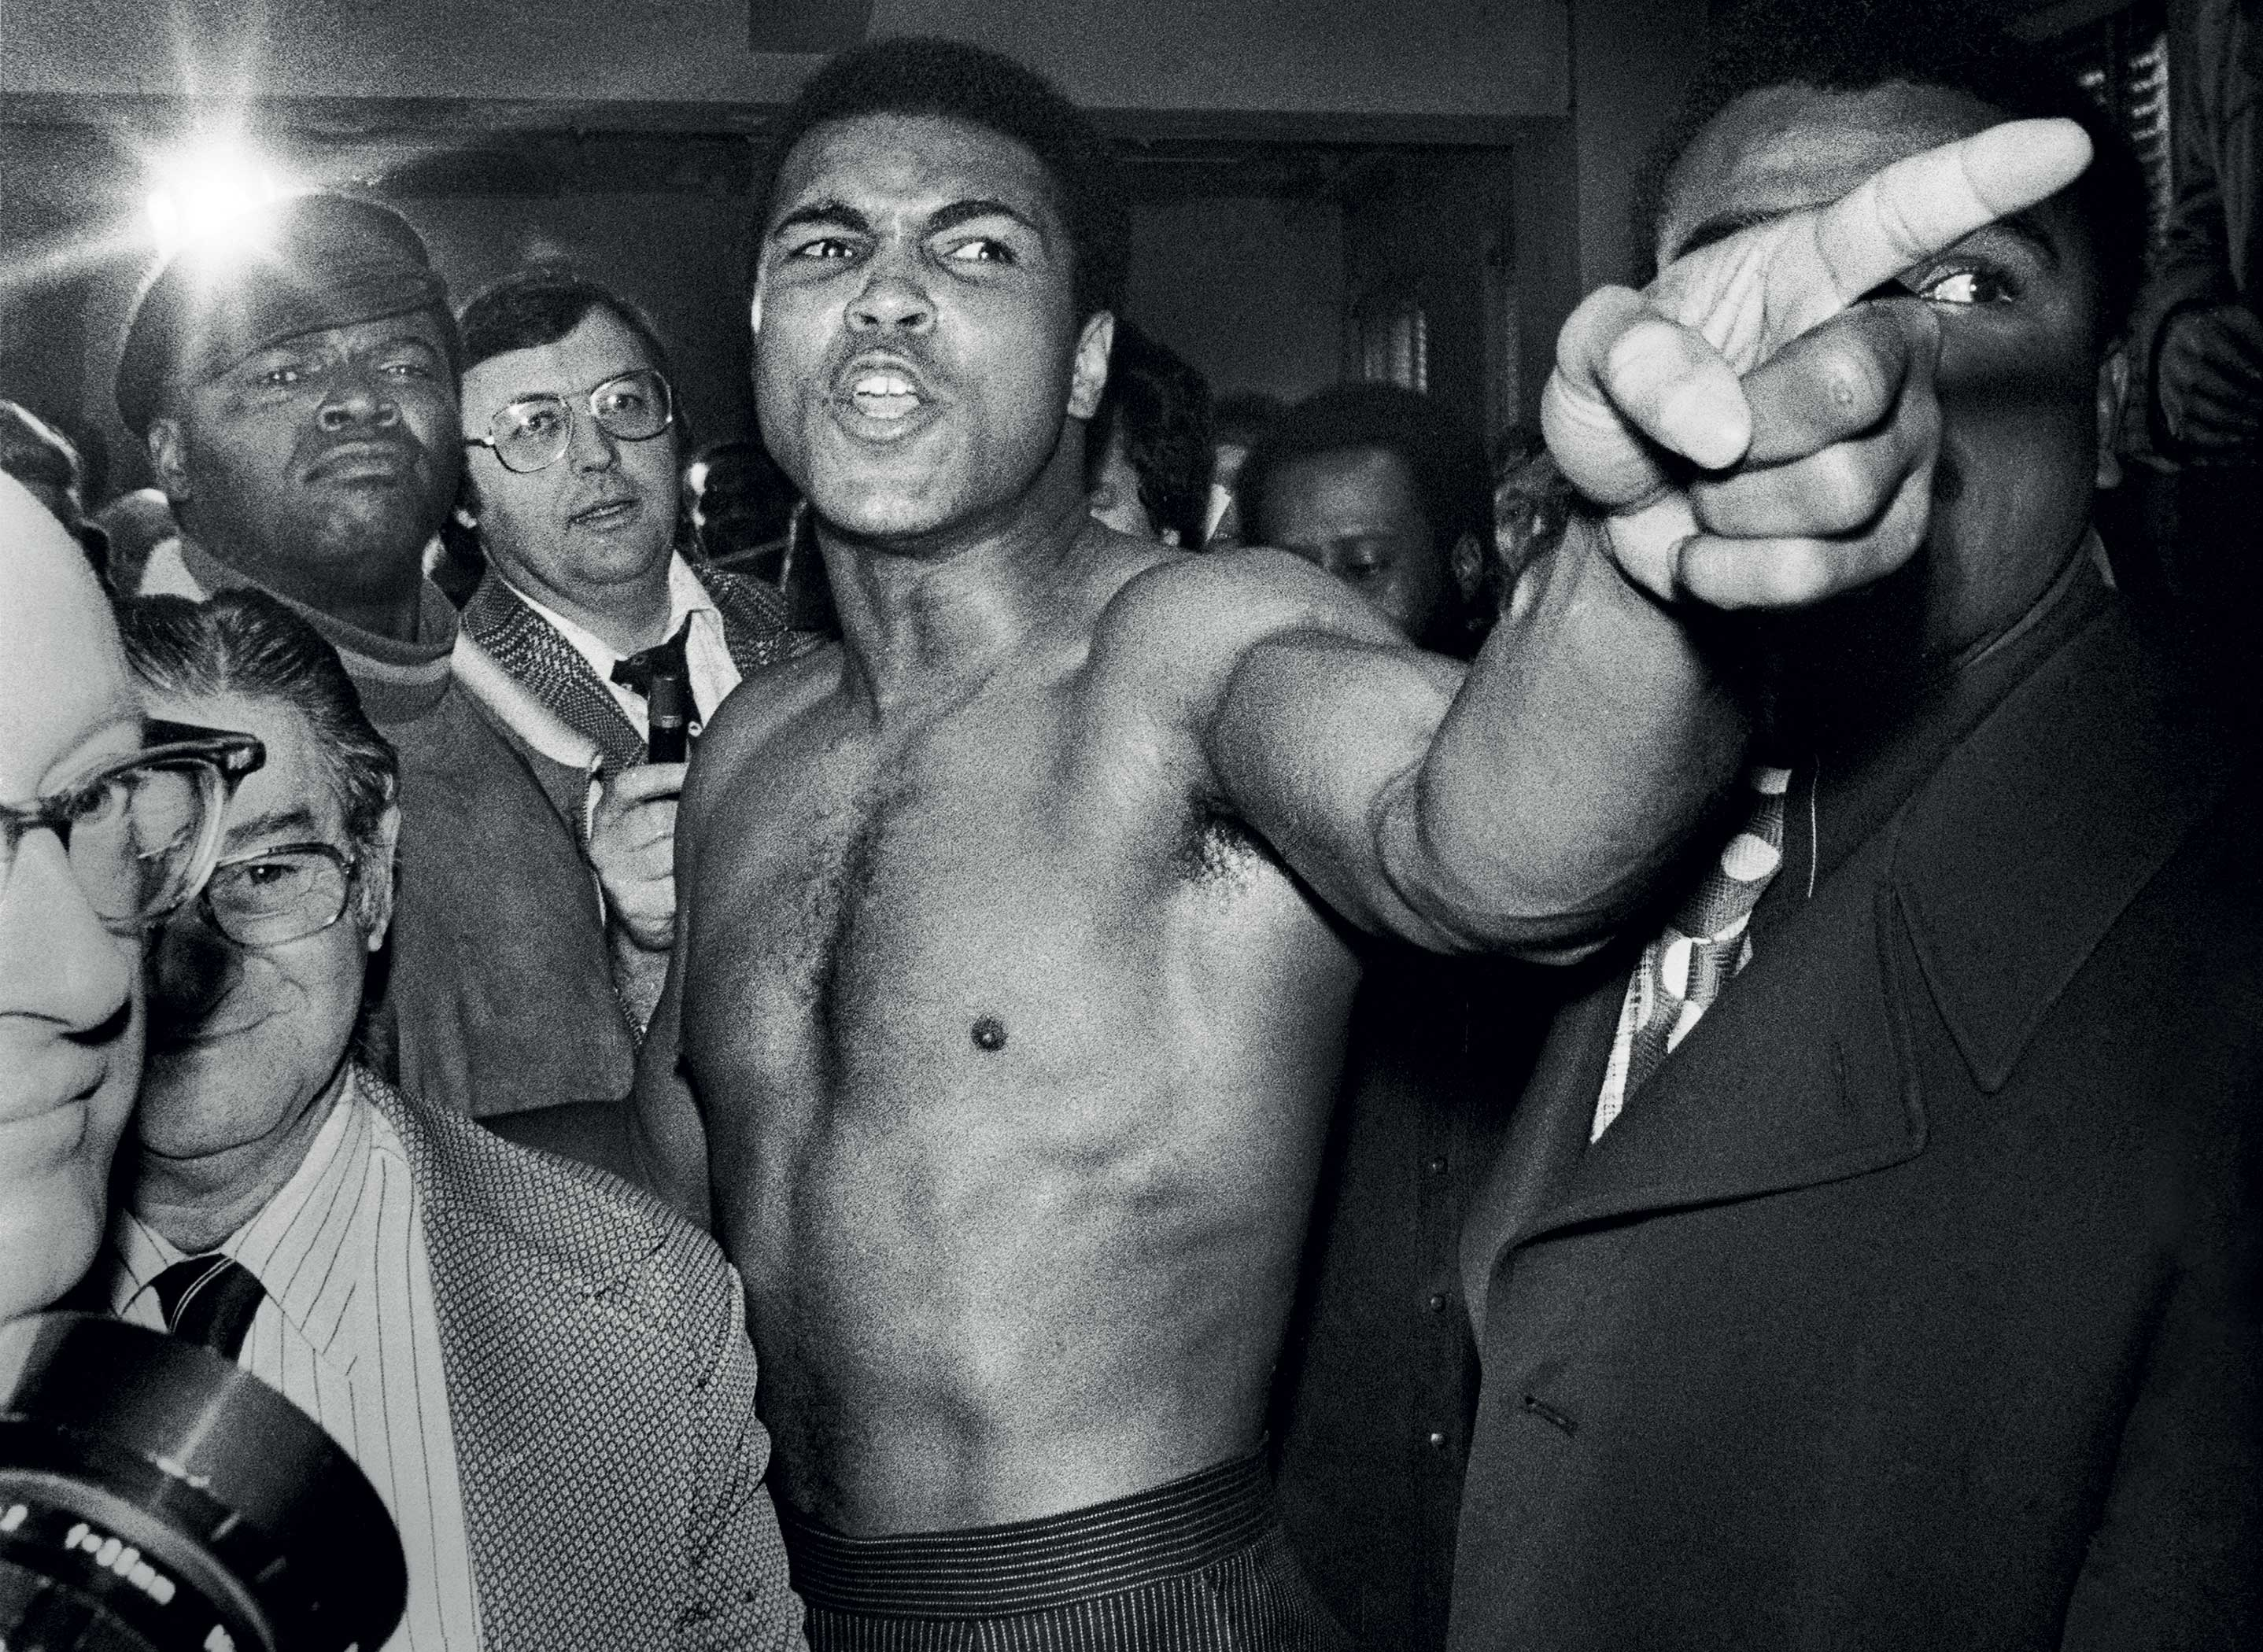 THREAT...Muhammad Ali gestures before brawling with Joe Frazier at the New York studio of ABC during the weigh-in process in 1974